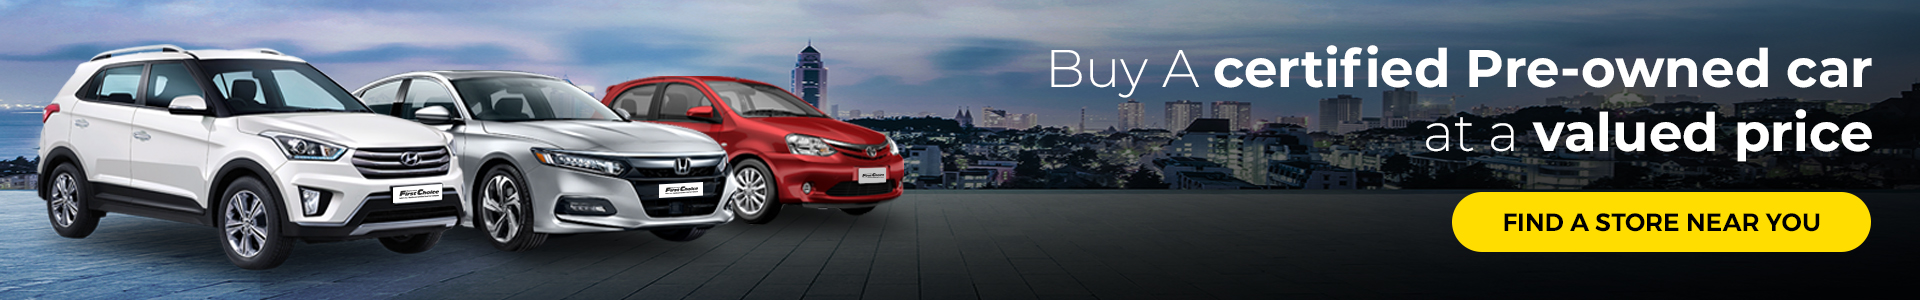 BUY A CERTIFIED PRE-OWNED CAR